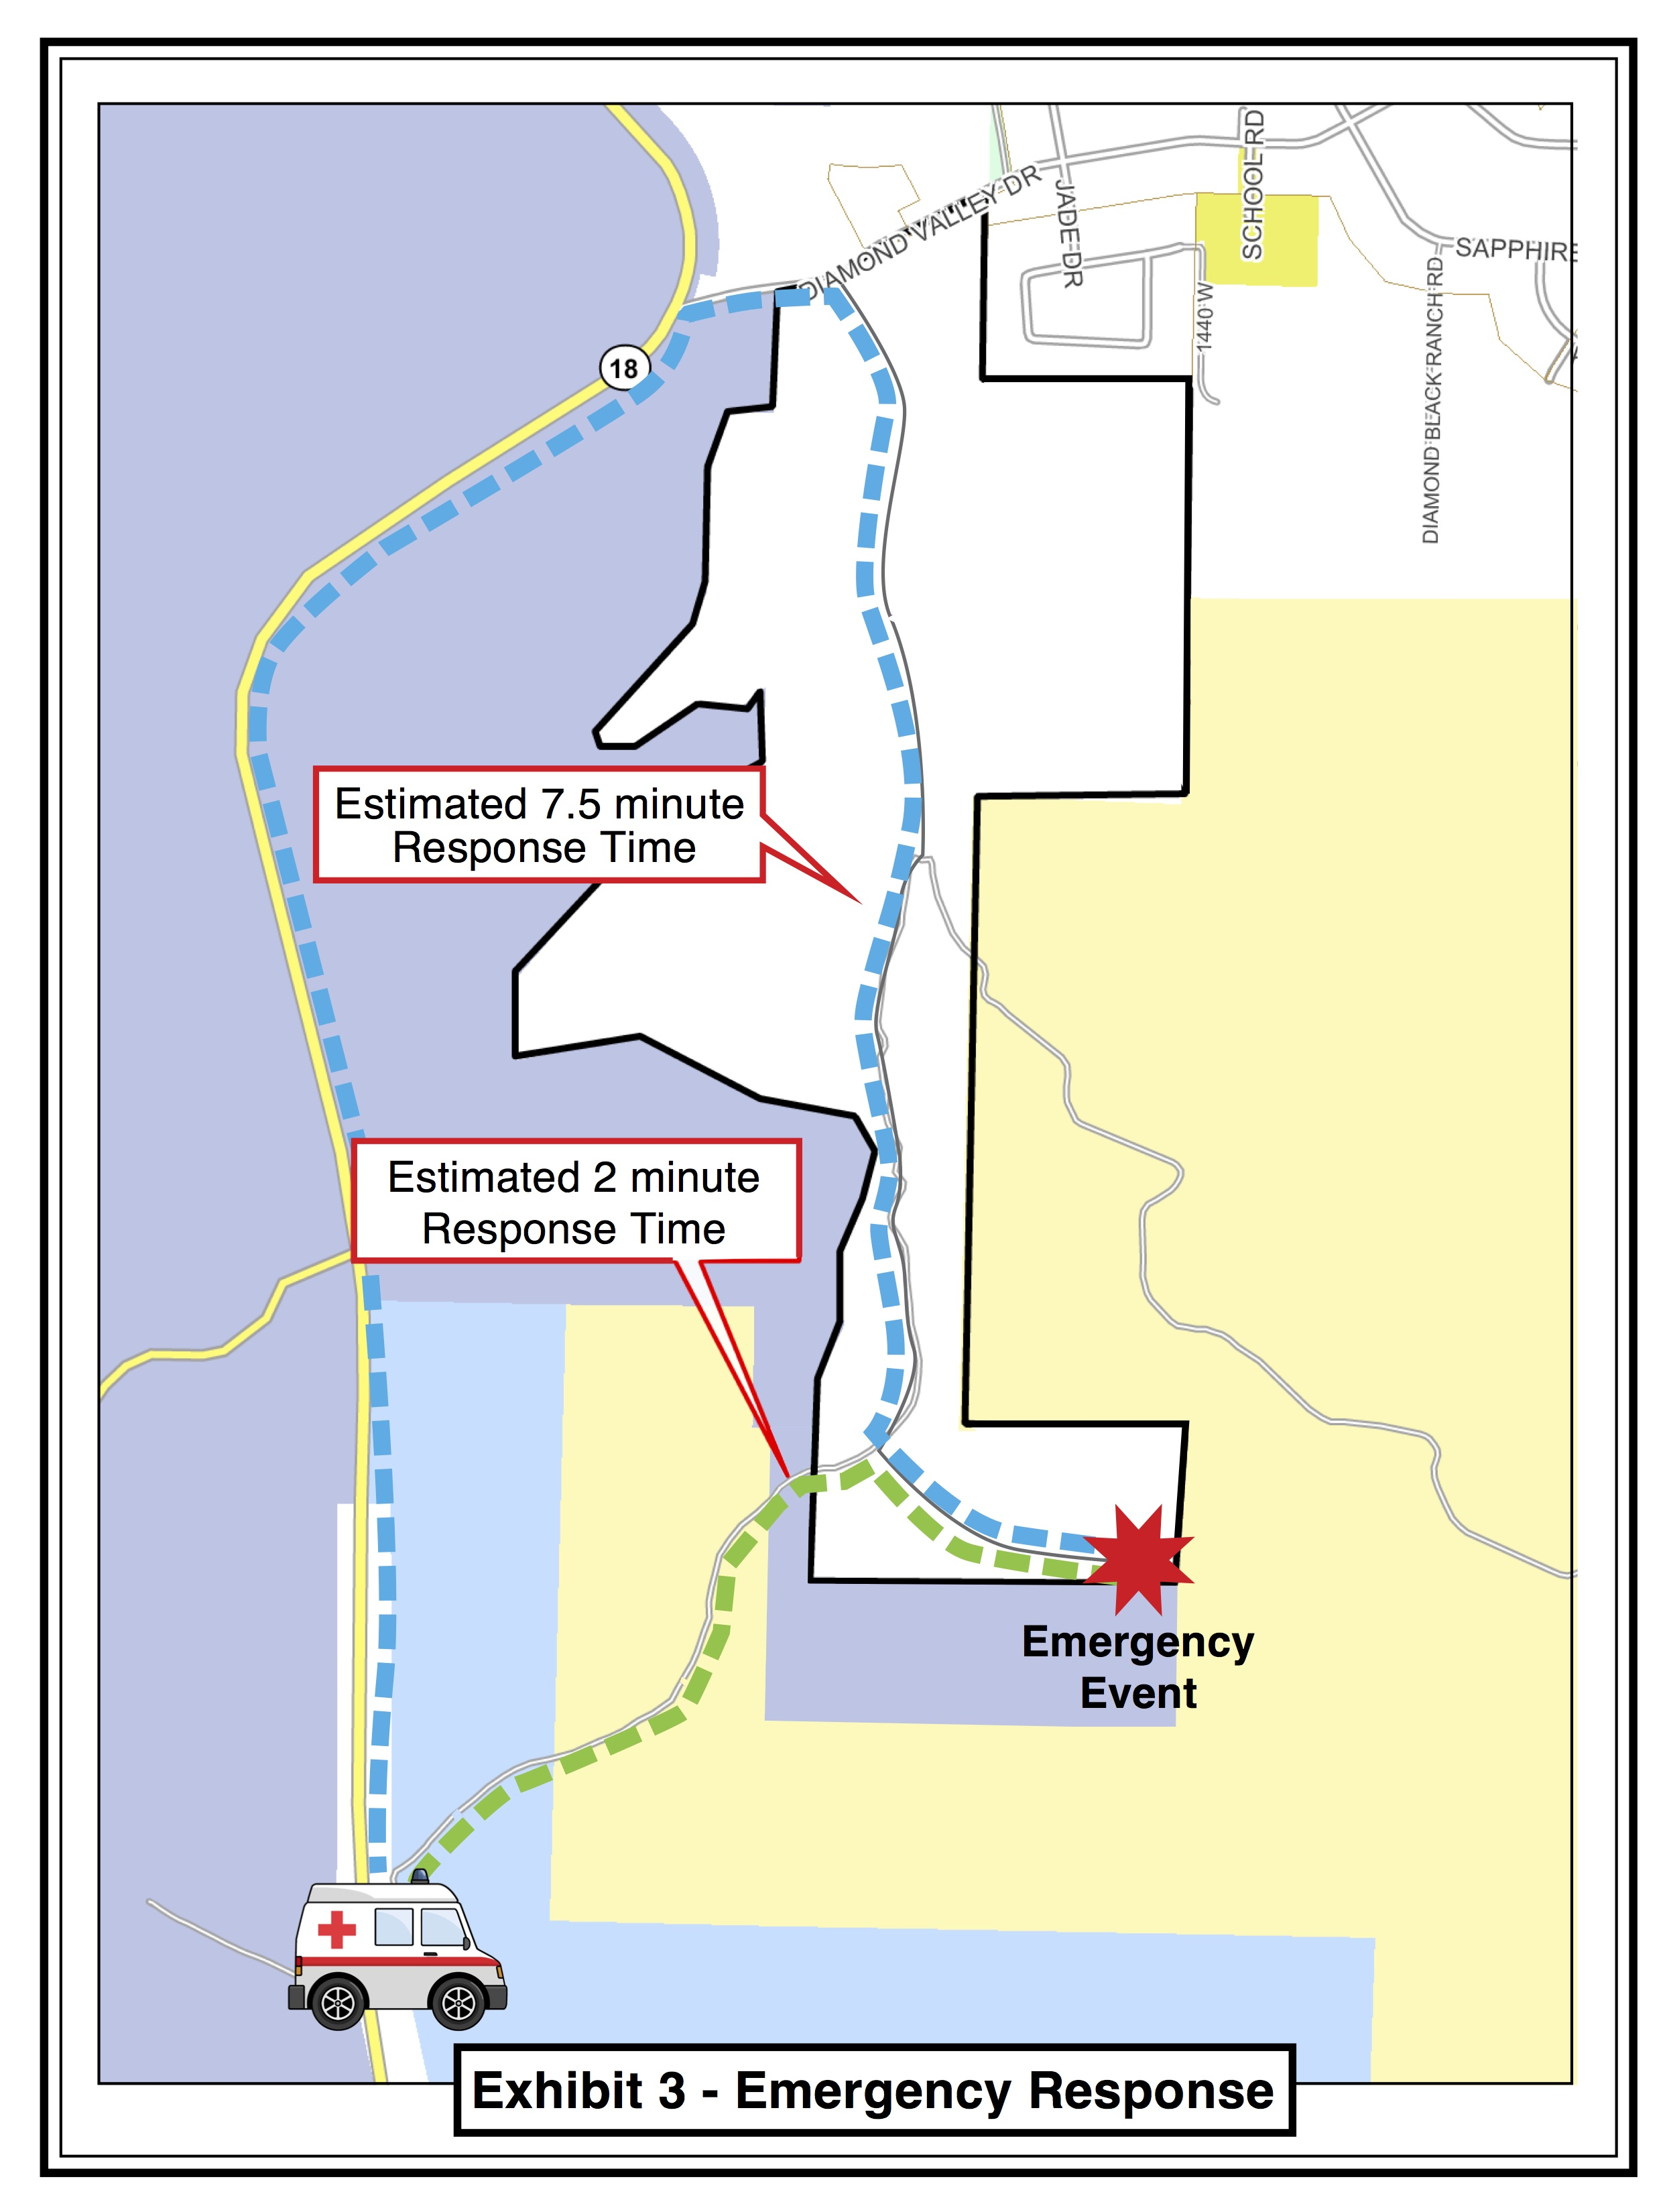 Diagram showing estimated emergency response times with and without a new road into a proposed development south of Diamond Valley | Image courtesy of Washington County, St. George News